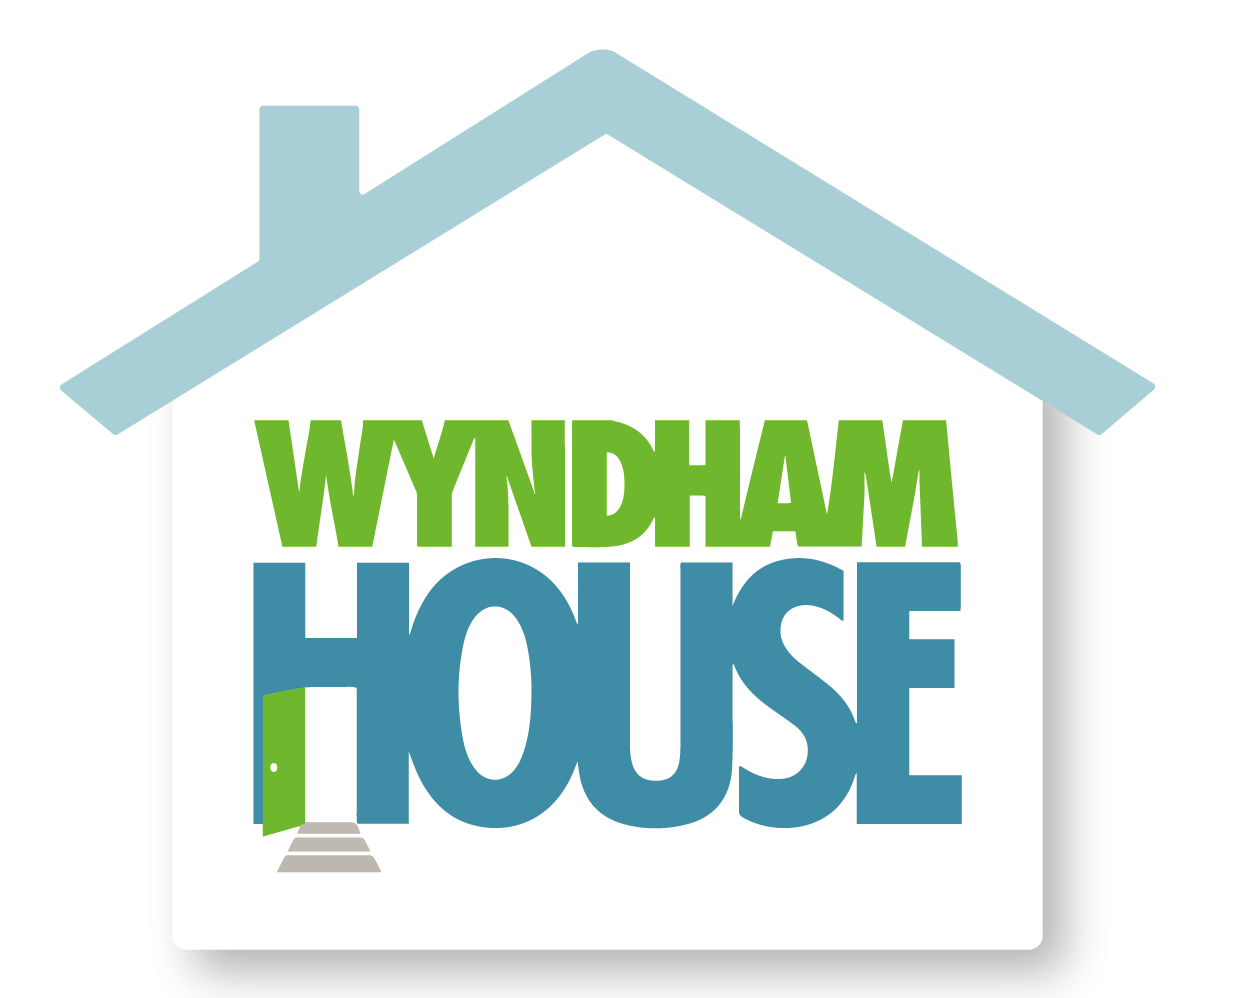 Wyndham House